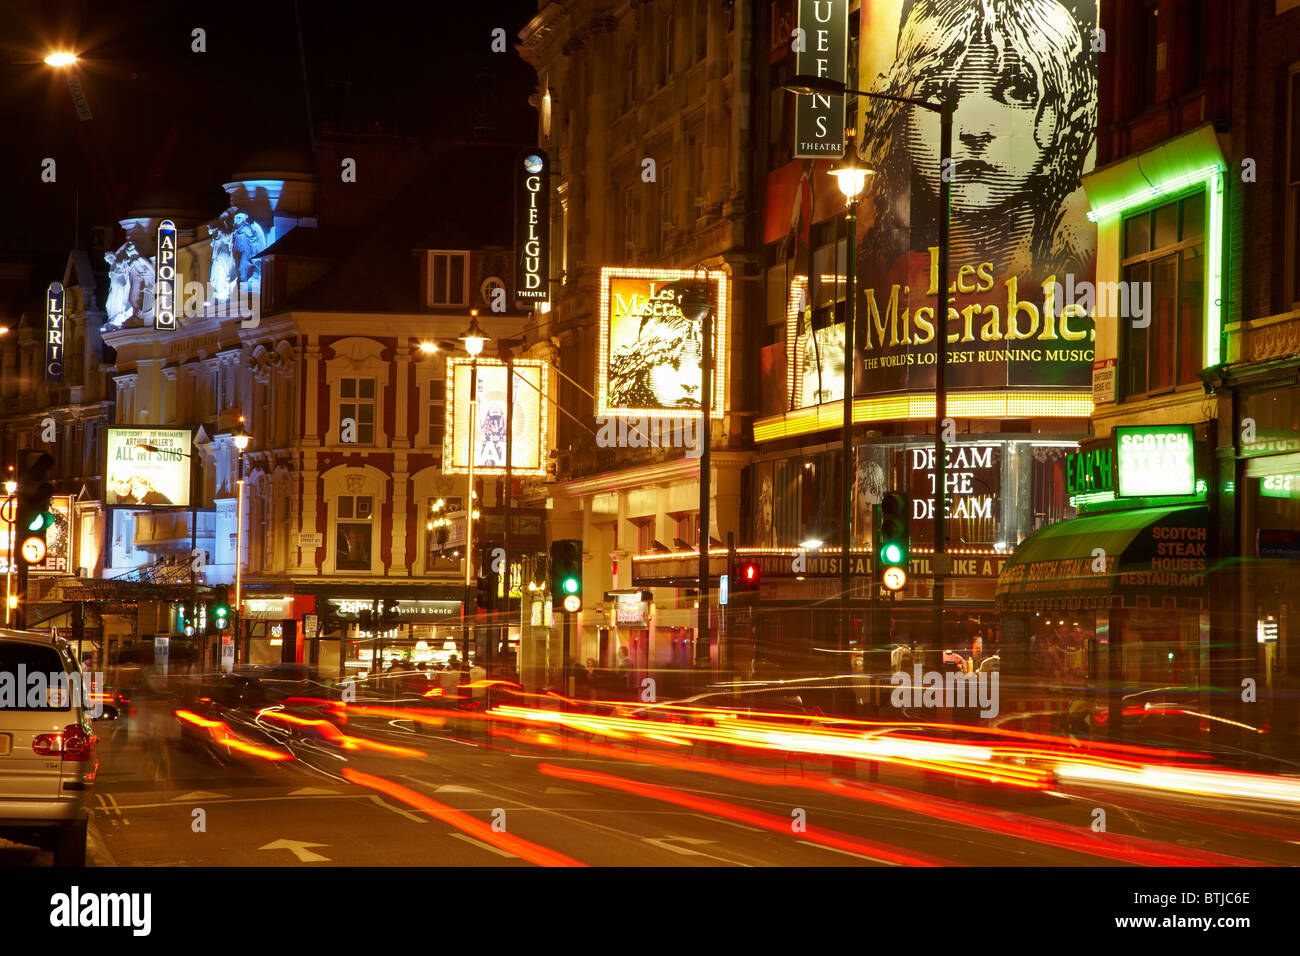 West End Theatres (Queen's, Gielgud, Apollo, and Lyric), Shaftesbury Avenue, Soho, London, England, United Kingdom - Stock Image